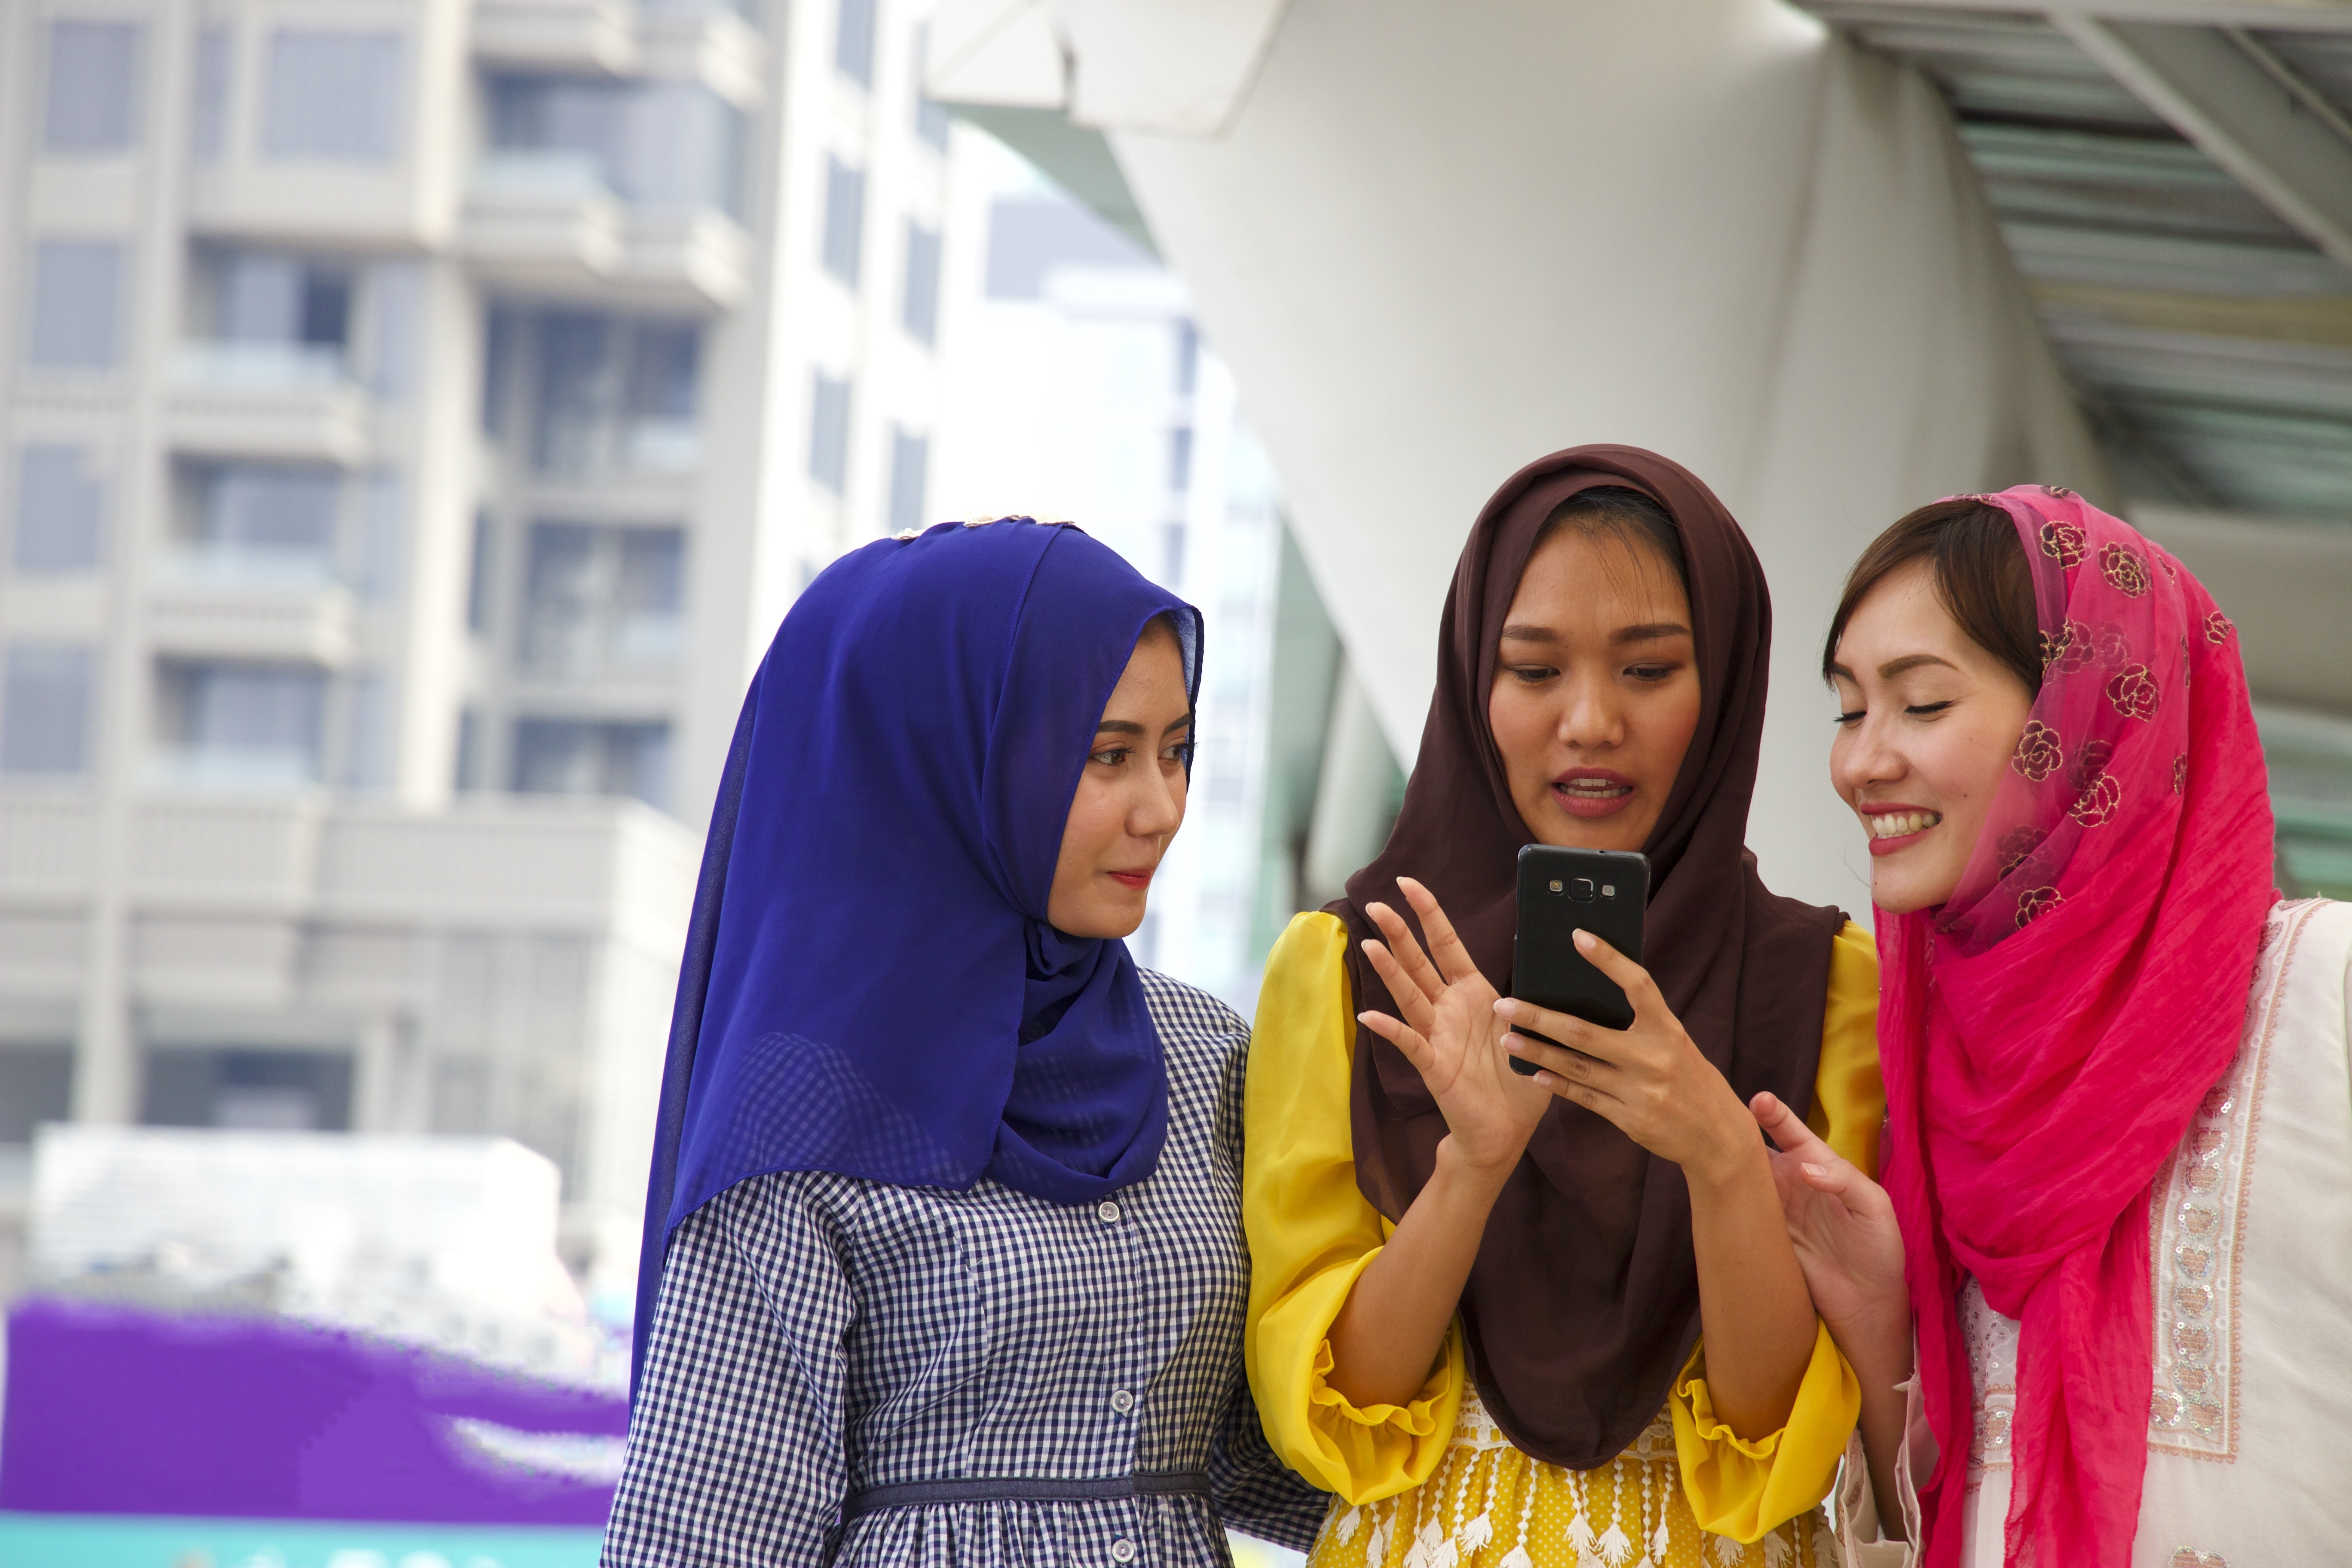 Asian-girls-looking-at-phone_shutterstock_600993269